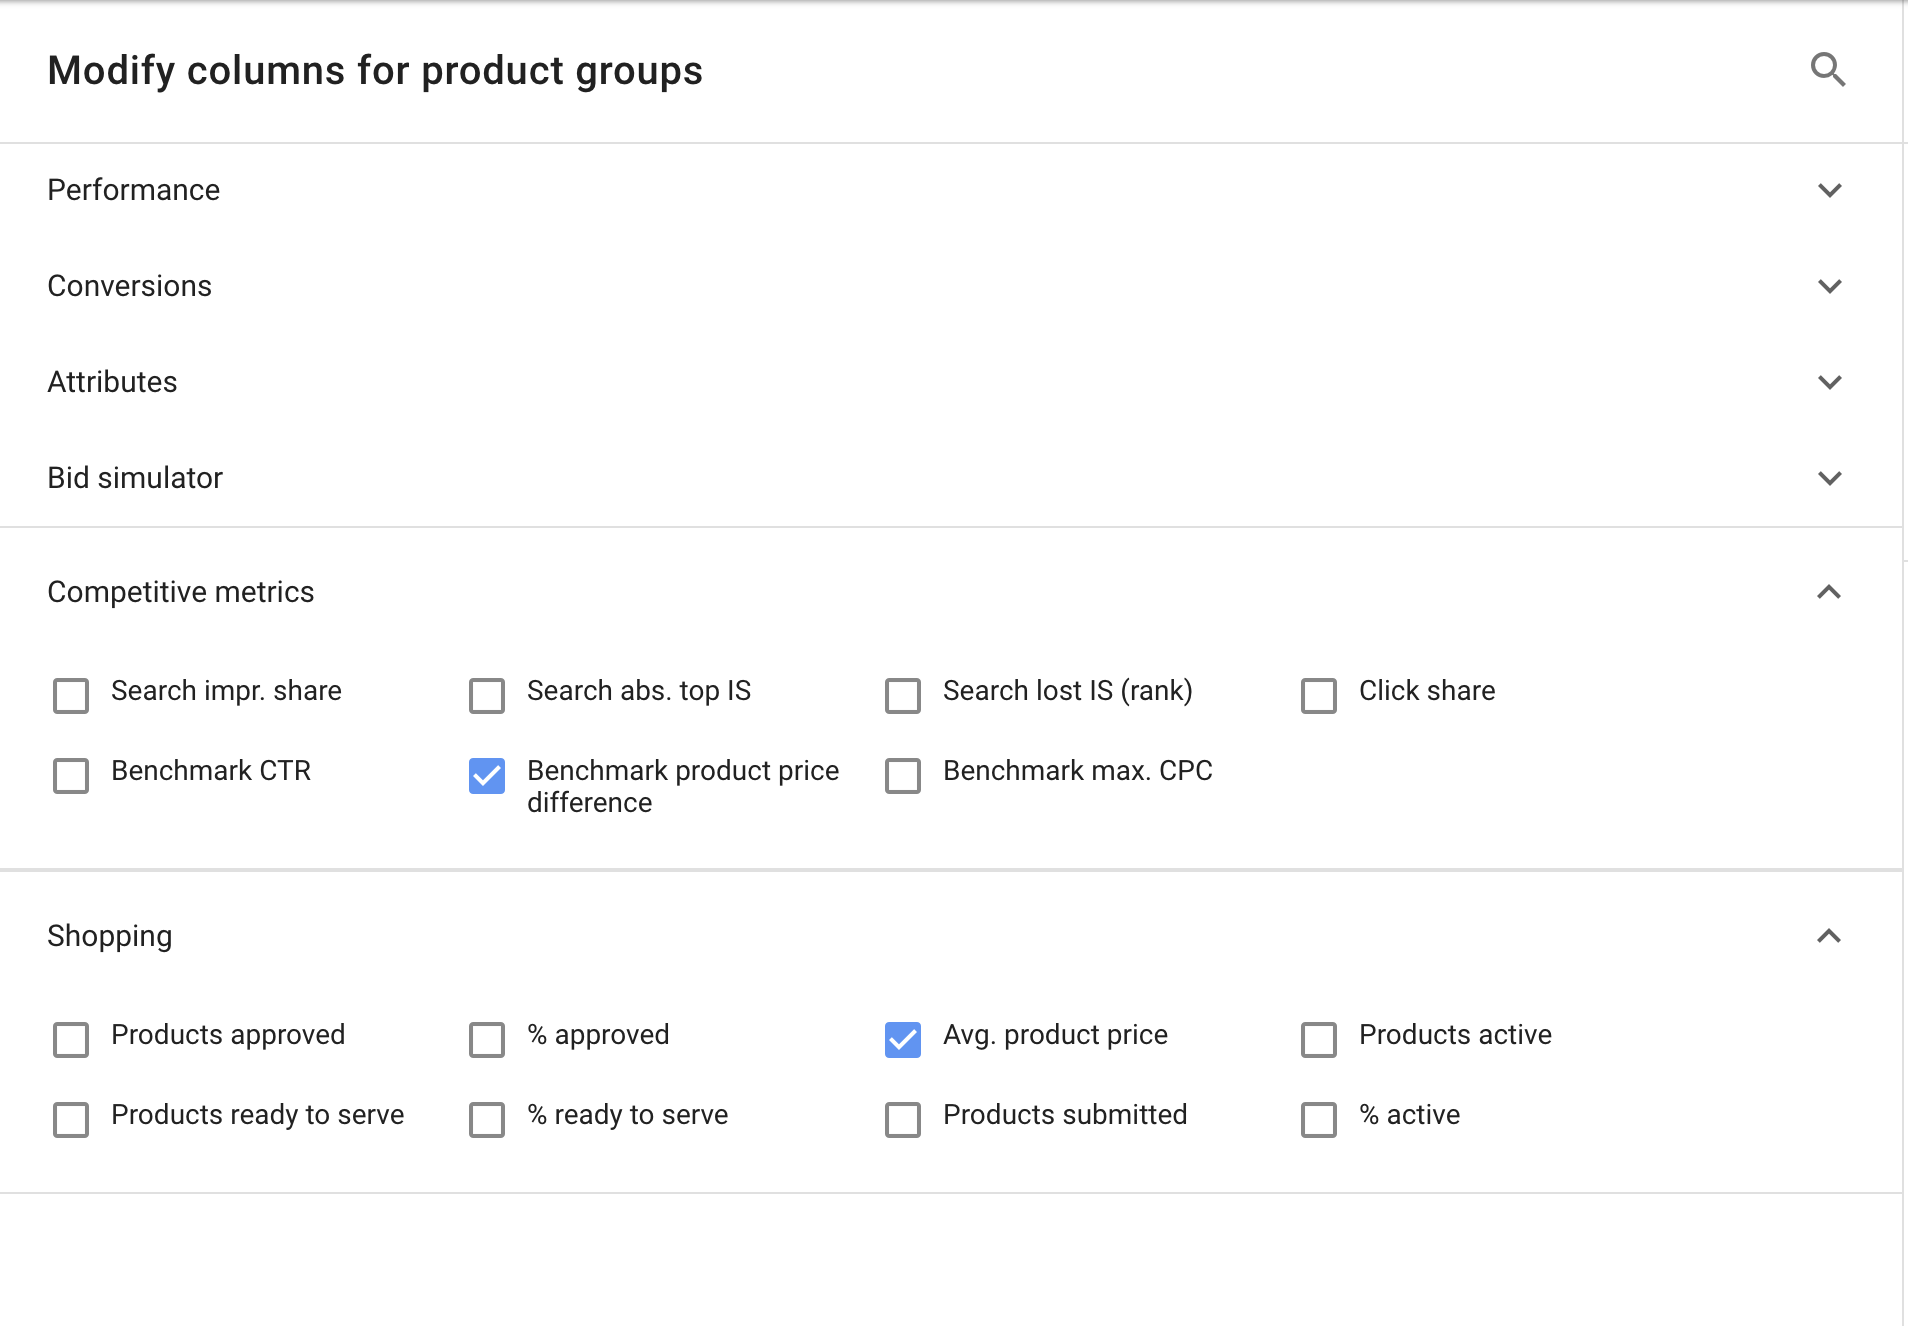 Modify columns for product groups